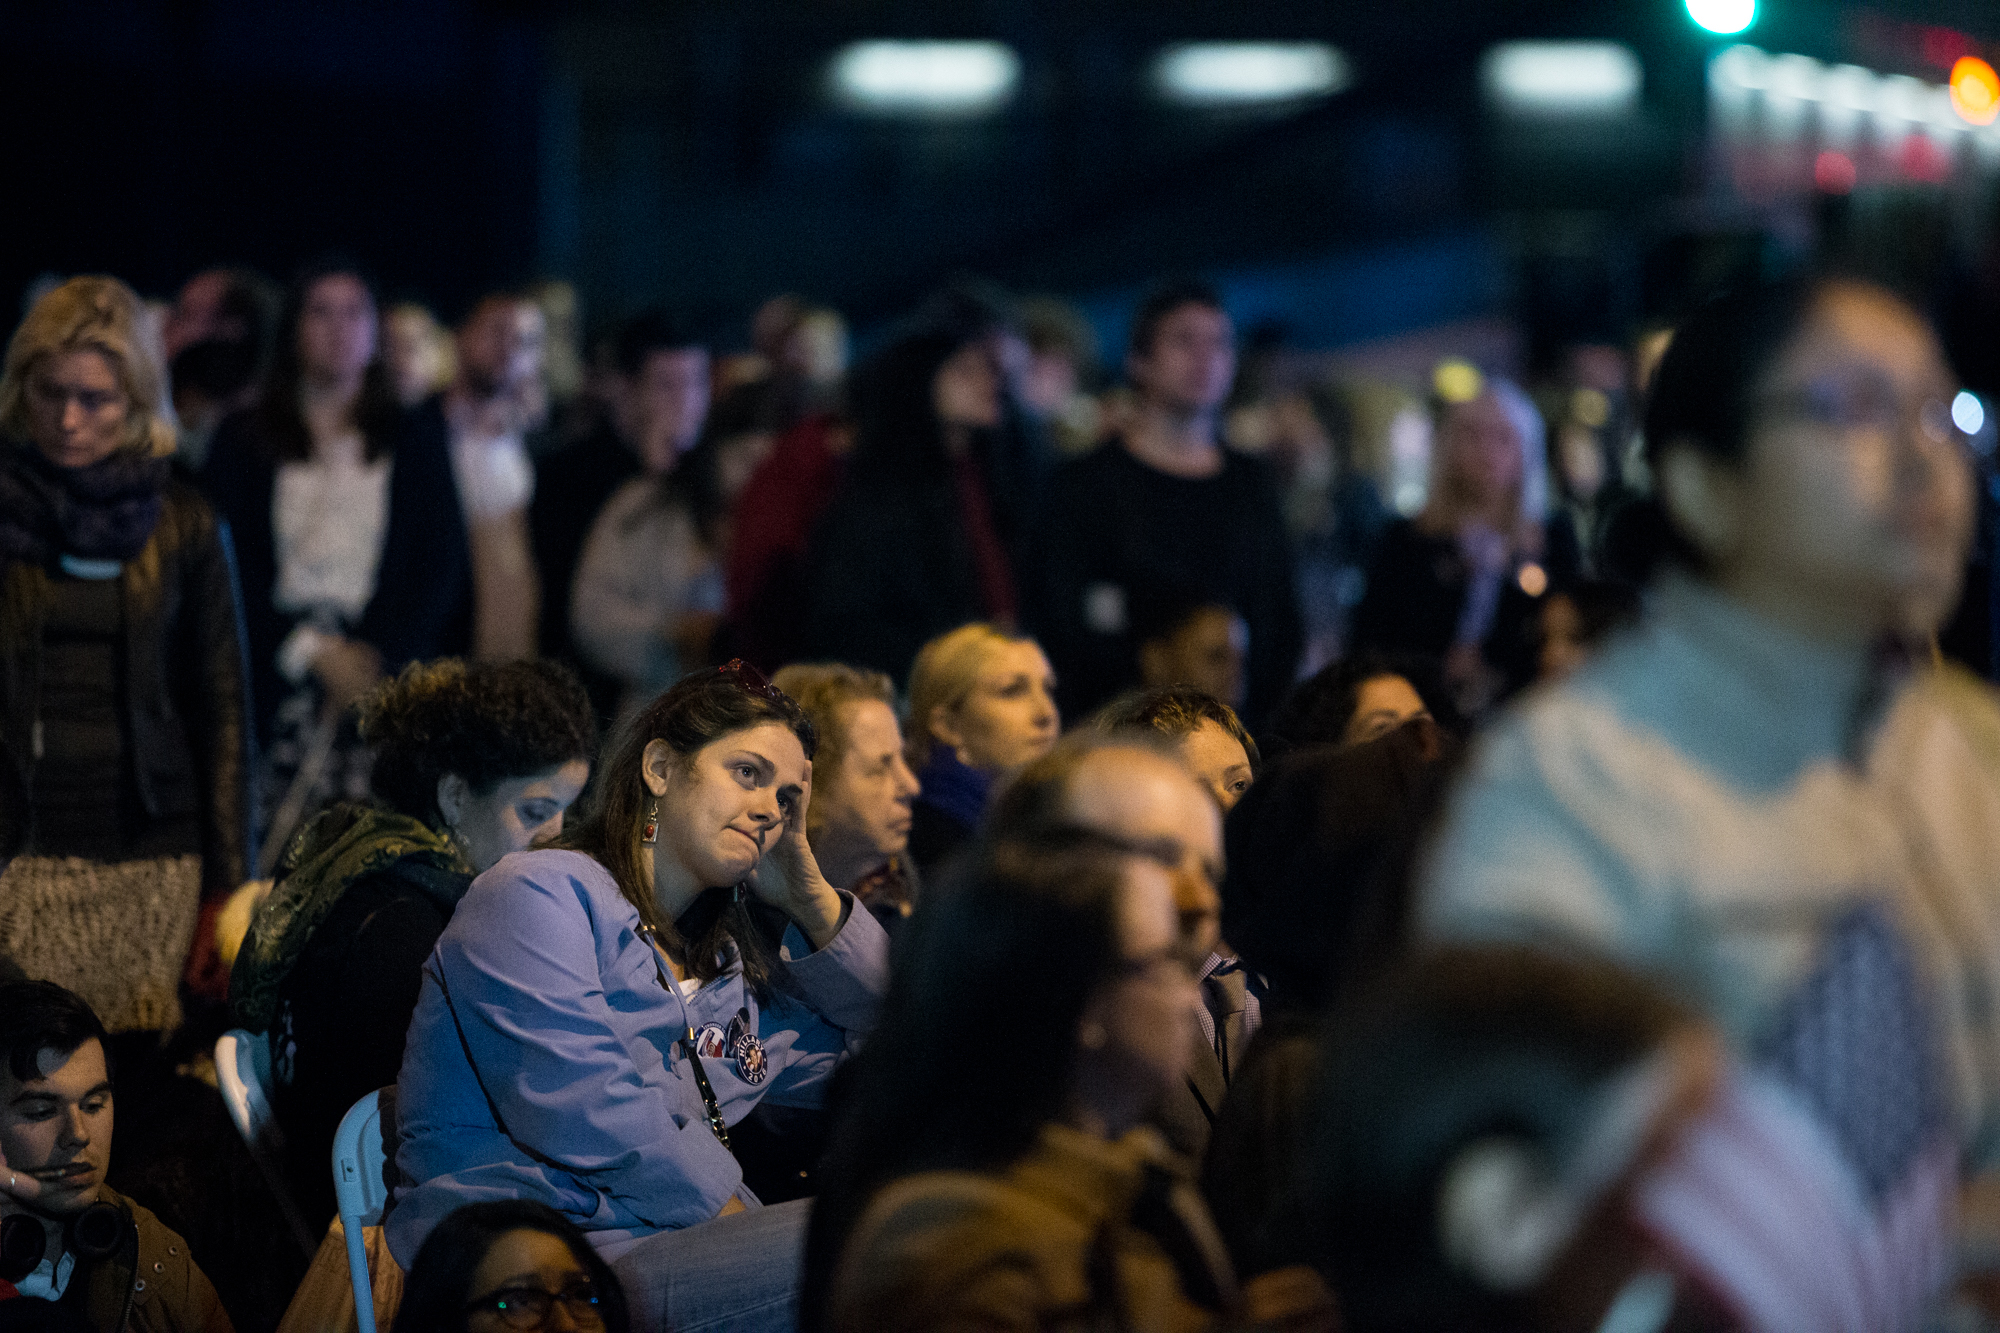 """Attendees watch commentary and results on the big screen television outside the Jacob K. Javits Convention Center, in the early hours of Nov. 9, 2016. After it became clear that Clinton would lose, attendees waited to find out if she would make a concession speech that night.Soon after, Clinton's campaign manager John Podesta announced that Clinton will not be speaking until the next day and urged supporters to go home and """"get some sleep"""". """"They're still counting votes and every vote should count,"""" Podesta said. """"Several states are too close to call, so we're not going to have anything more to say tonight."""""""